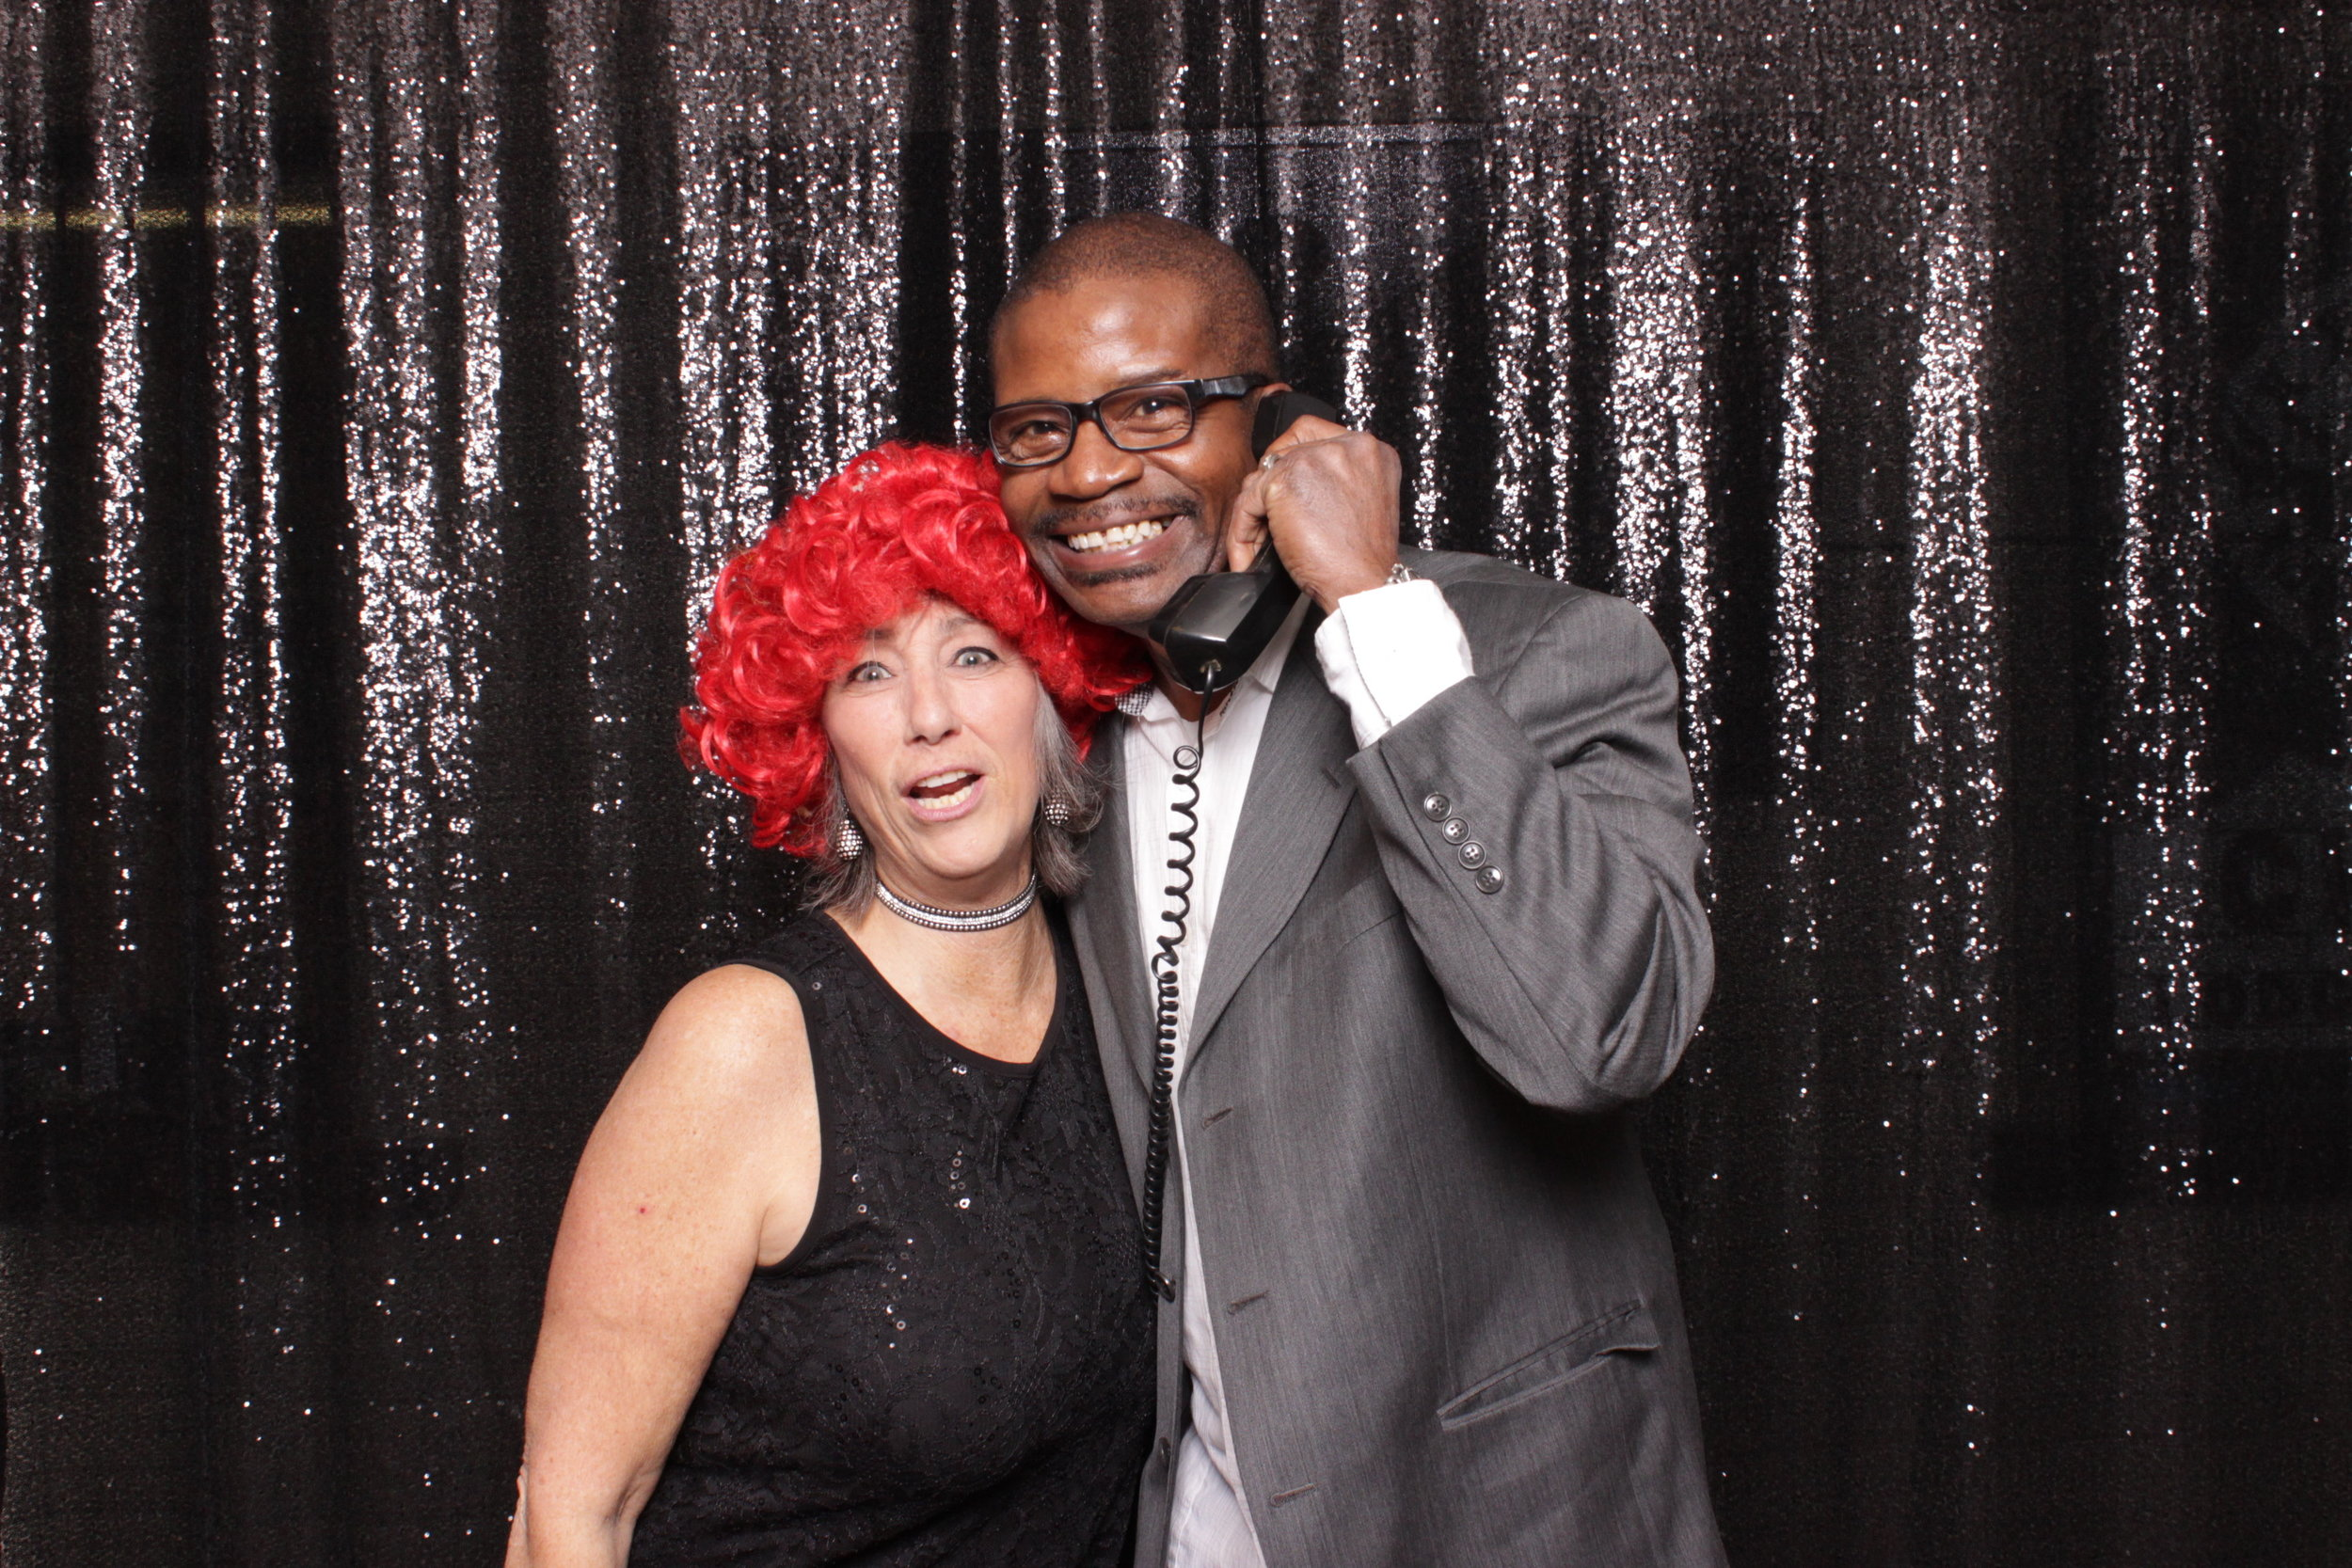 the-best-chico-trebooth-photo-booth-rental.jpg